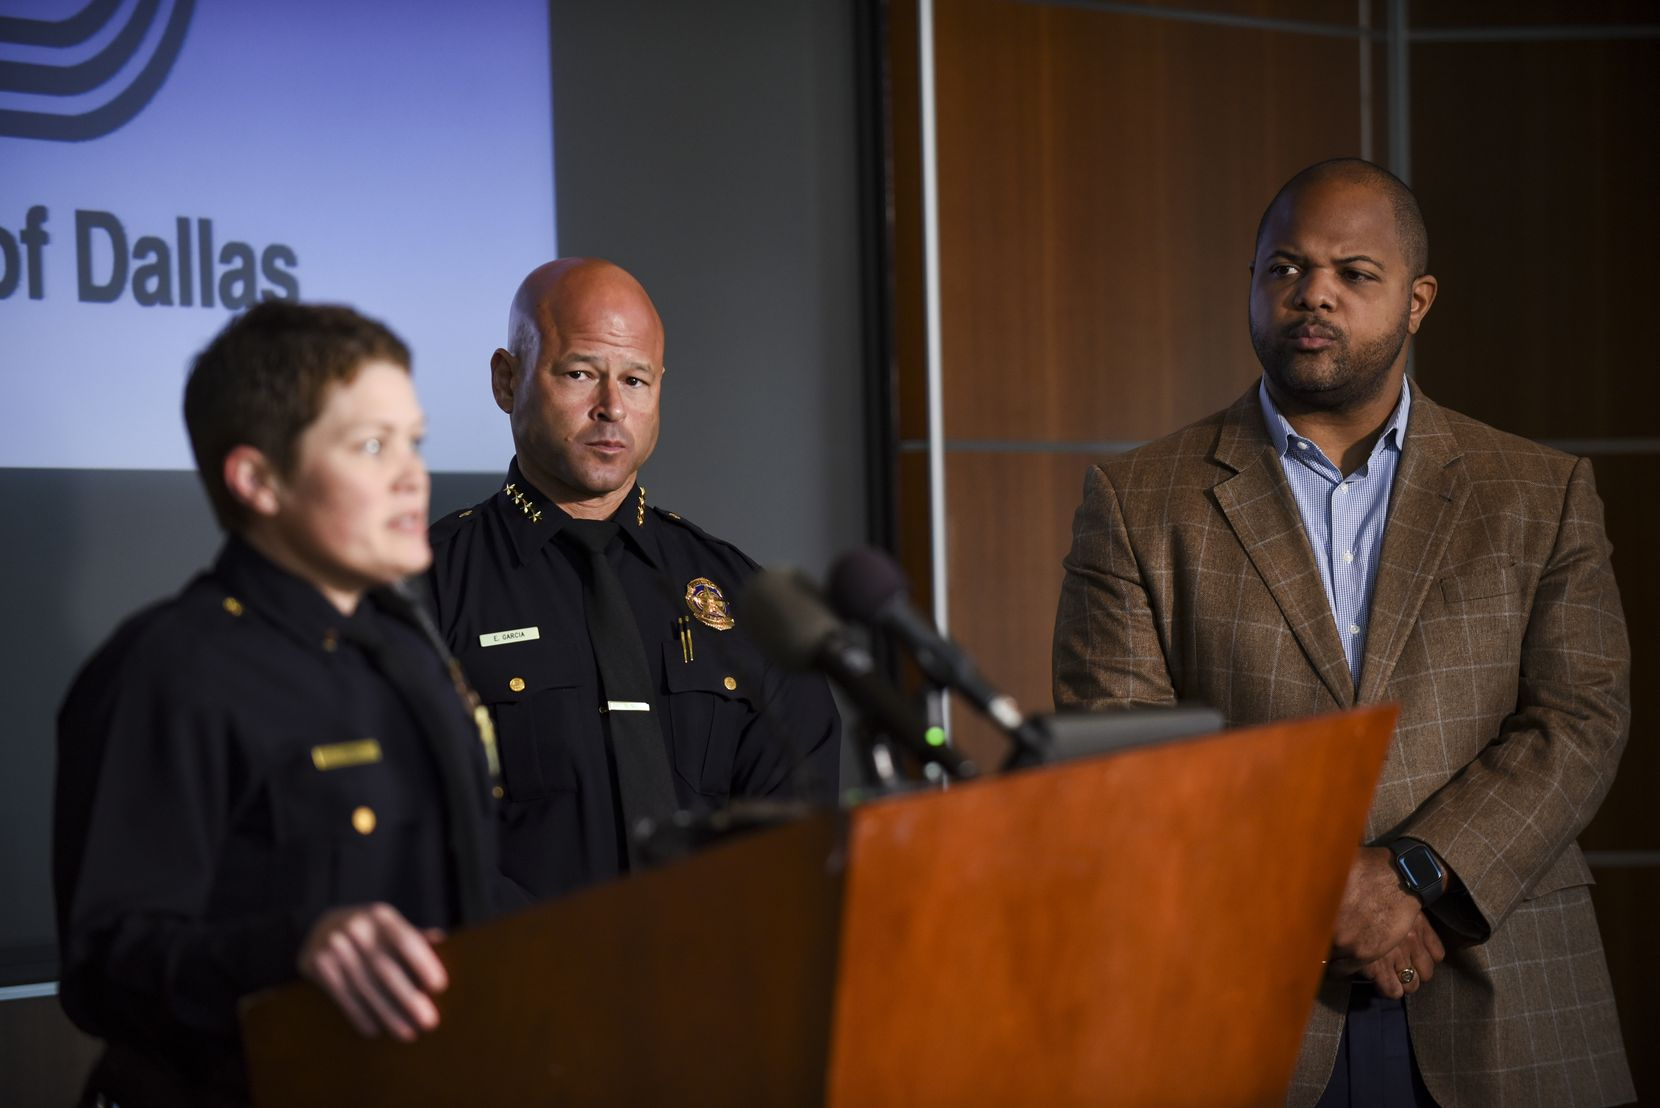 From left, Dallas Police Department Chief, Eddie Garcia and Mayor Eric Johnson peer at Dallas Police Head of Domestic Violence, Lt. Kylee Hawks, as she makes a statement during a press conference about the Dallas Police Department's plan to reduce domestic violence at the Jack Evans Police Headquarters in Dallas, Texas on Monday, October 11, 2021. (Emil Lippe/Special Contributor)